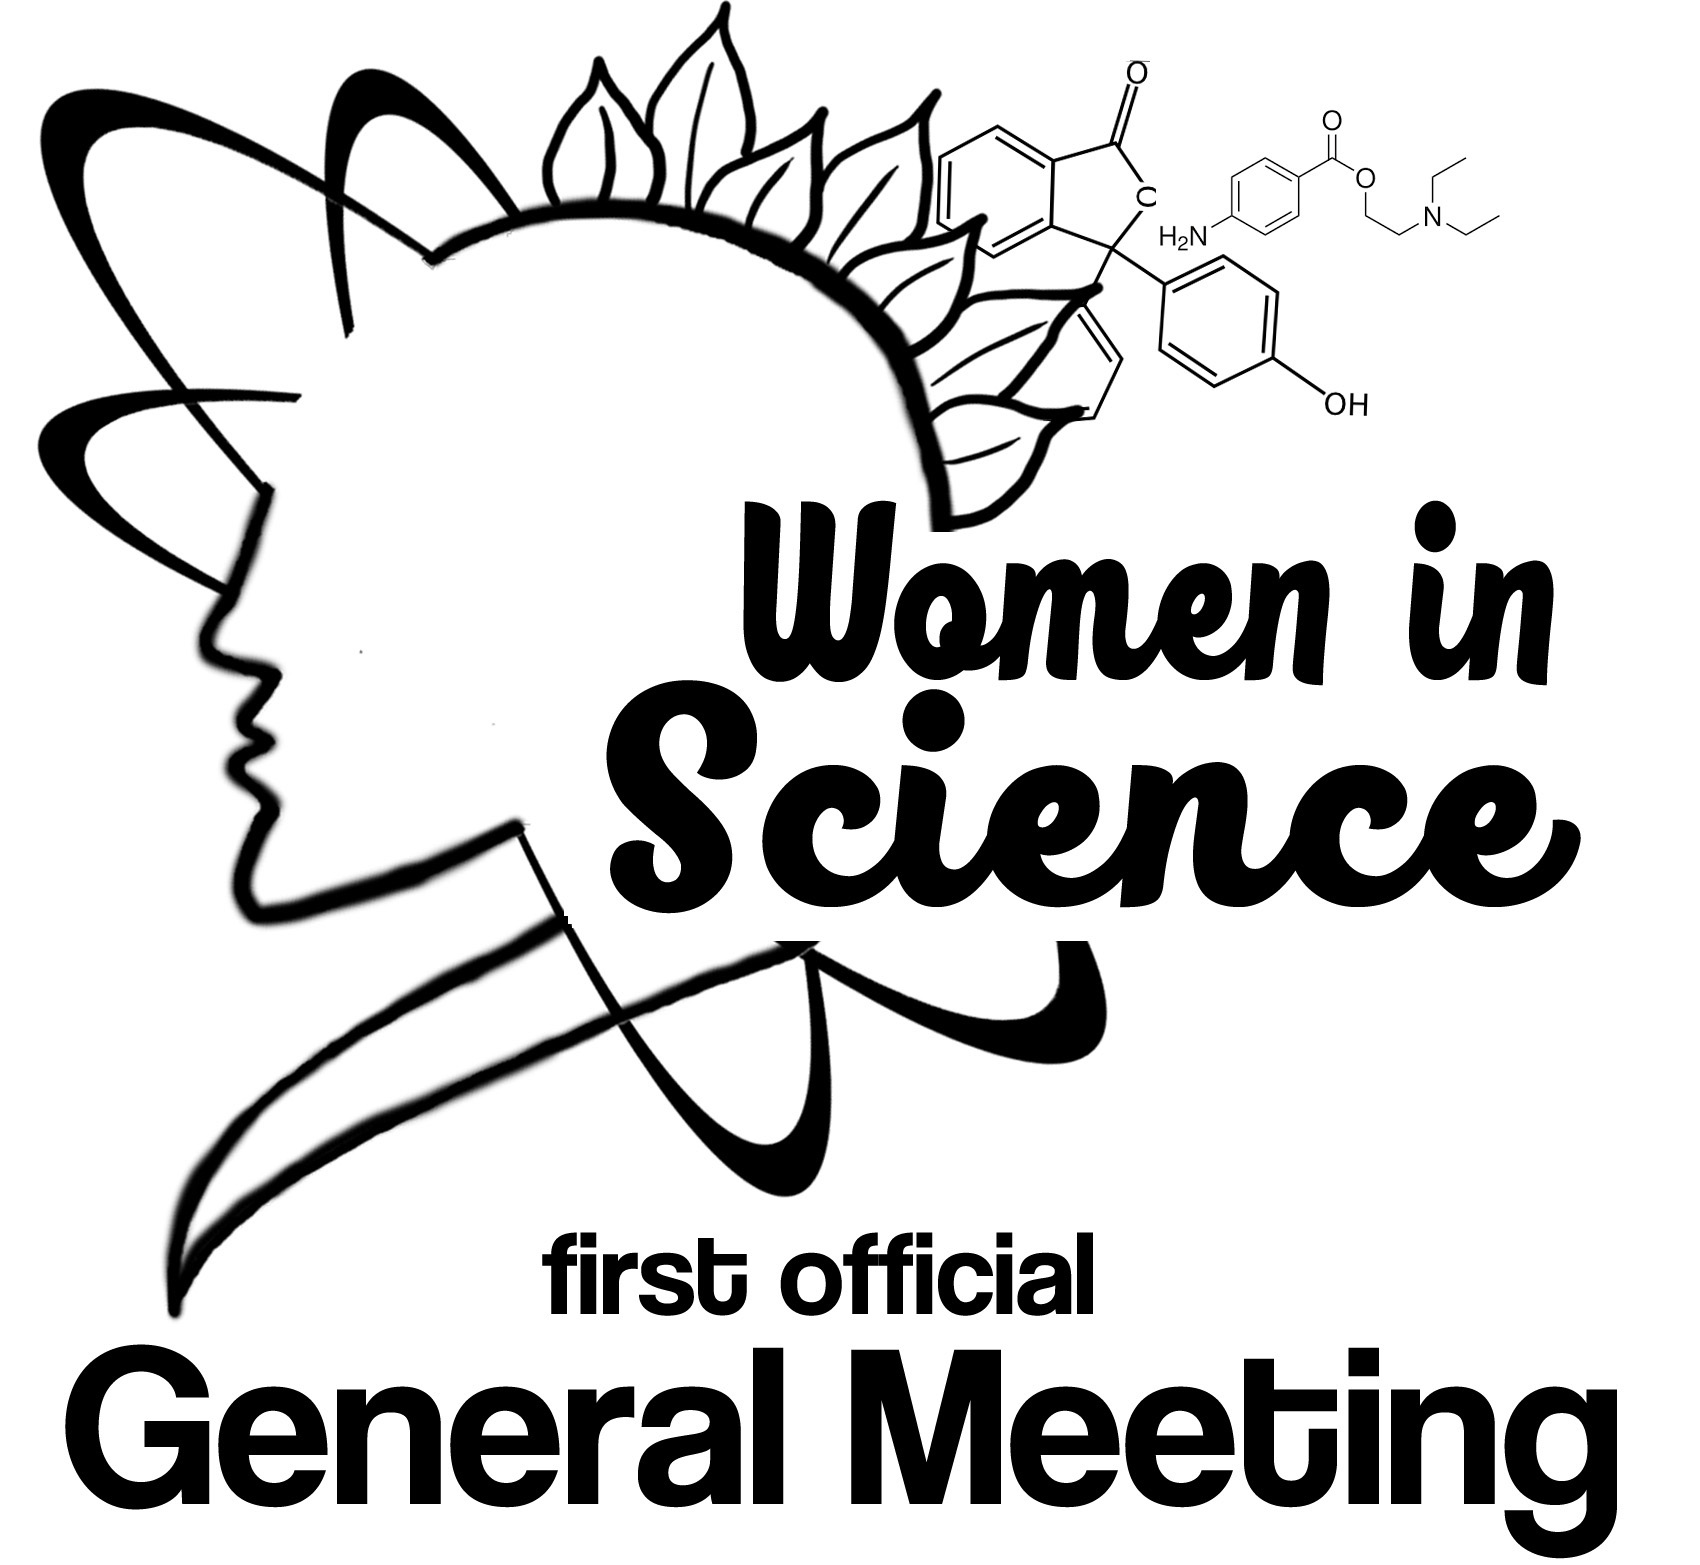 Women in Science first official general meeting.